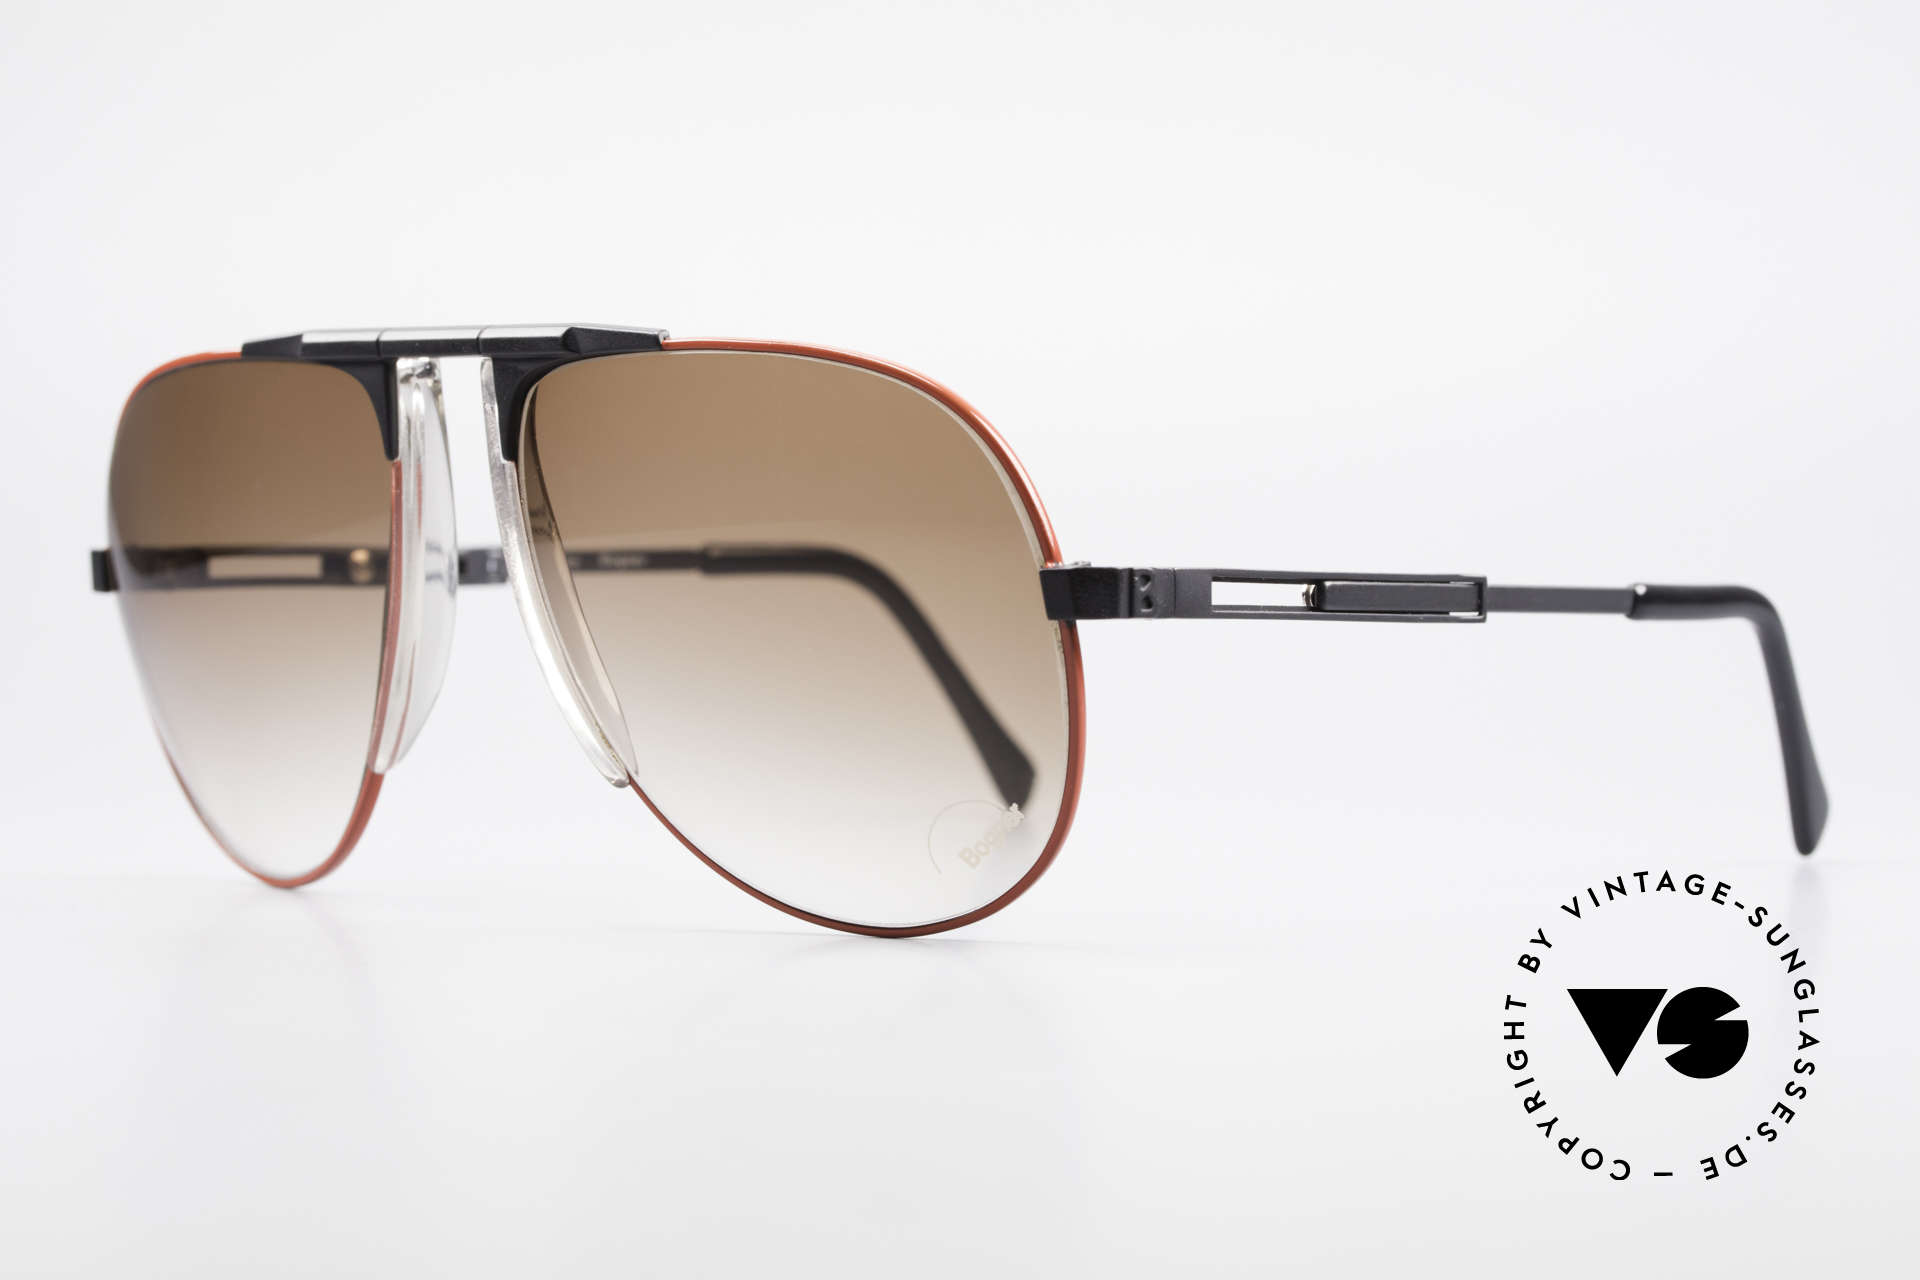 Willy Bogner 7011 Adjustable 80's Sunglasses, finest quality (100% UV) from Austria from app. 1982, Made for Men